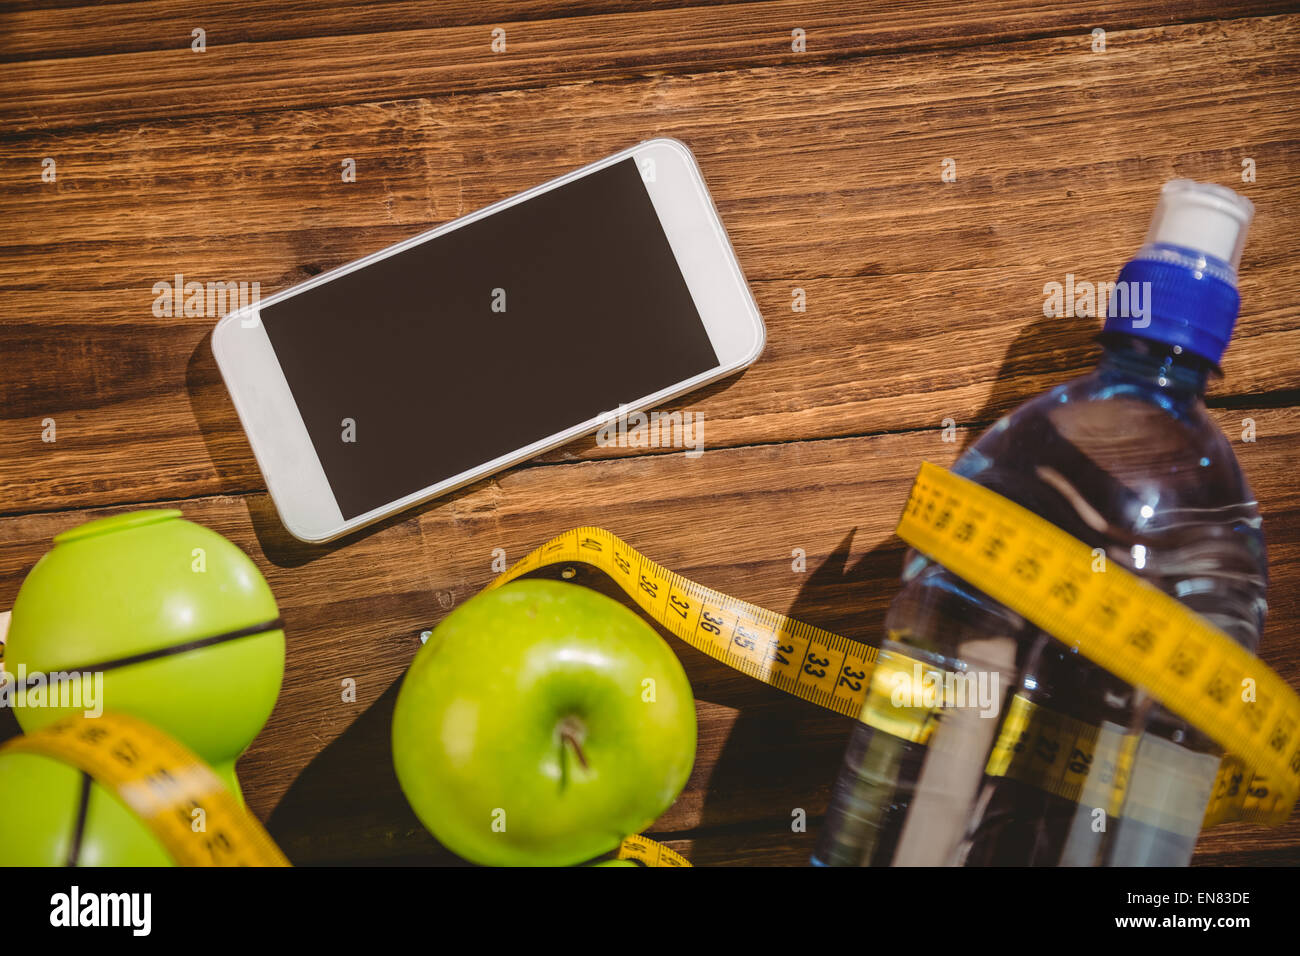 Smartphone with indicators of healthy lifestyle - Stock Image